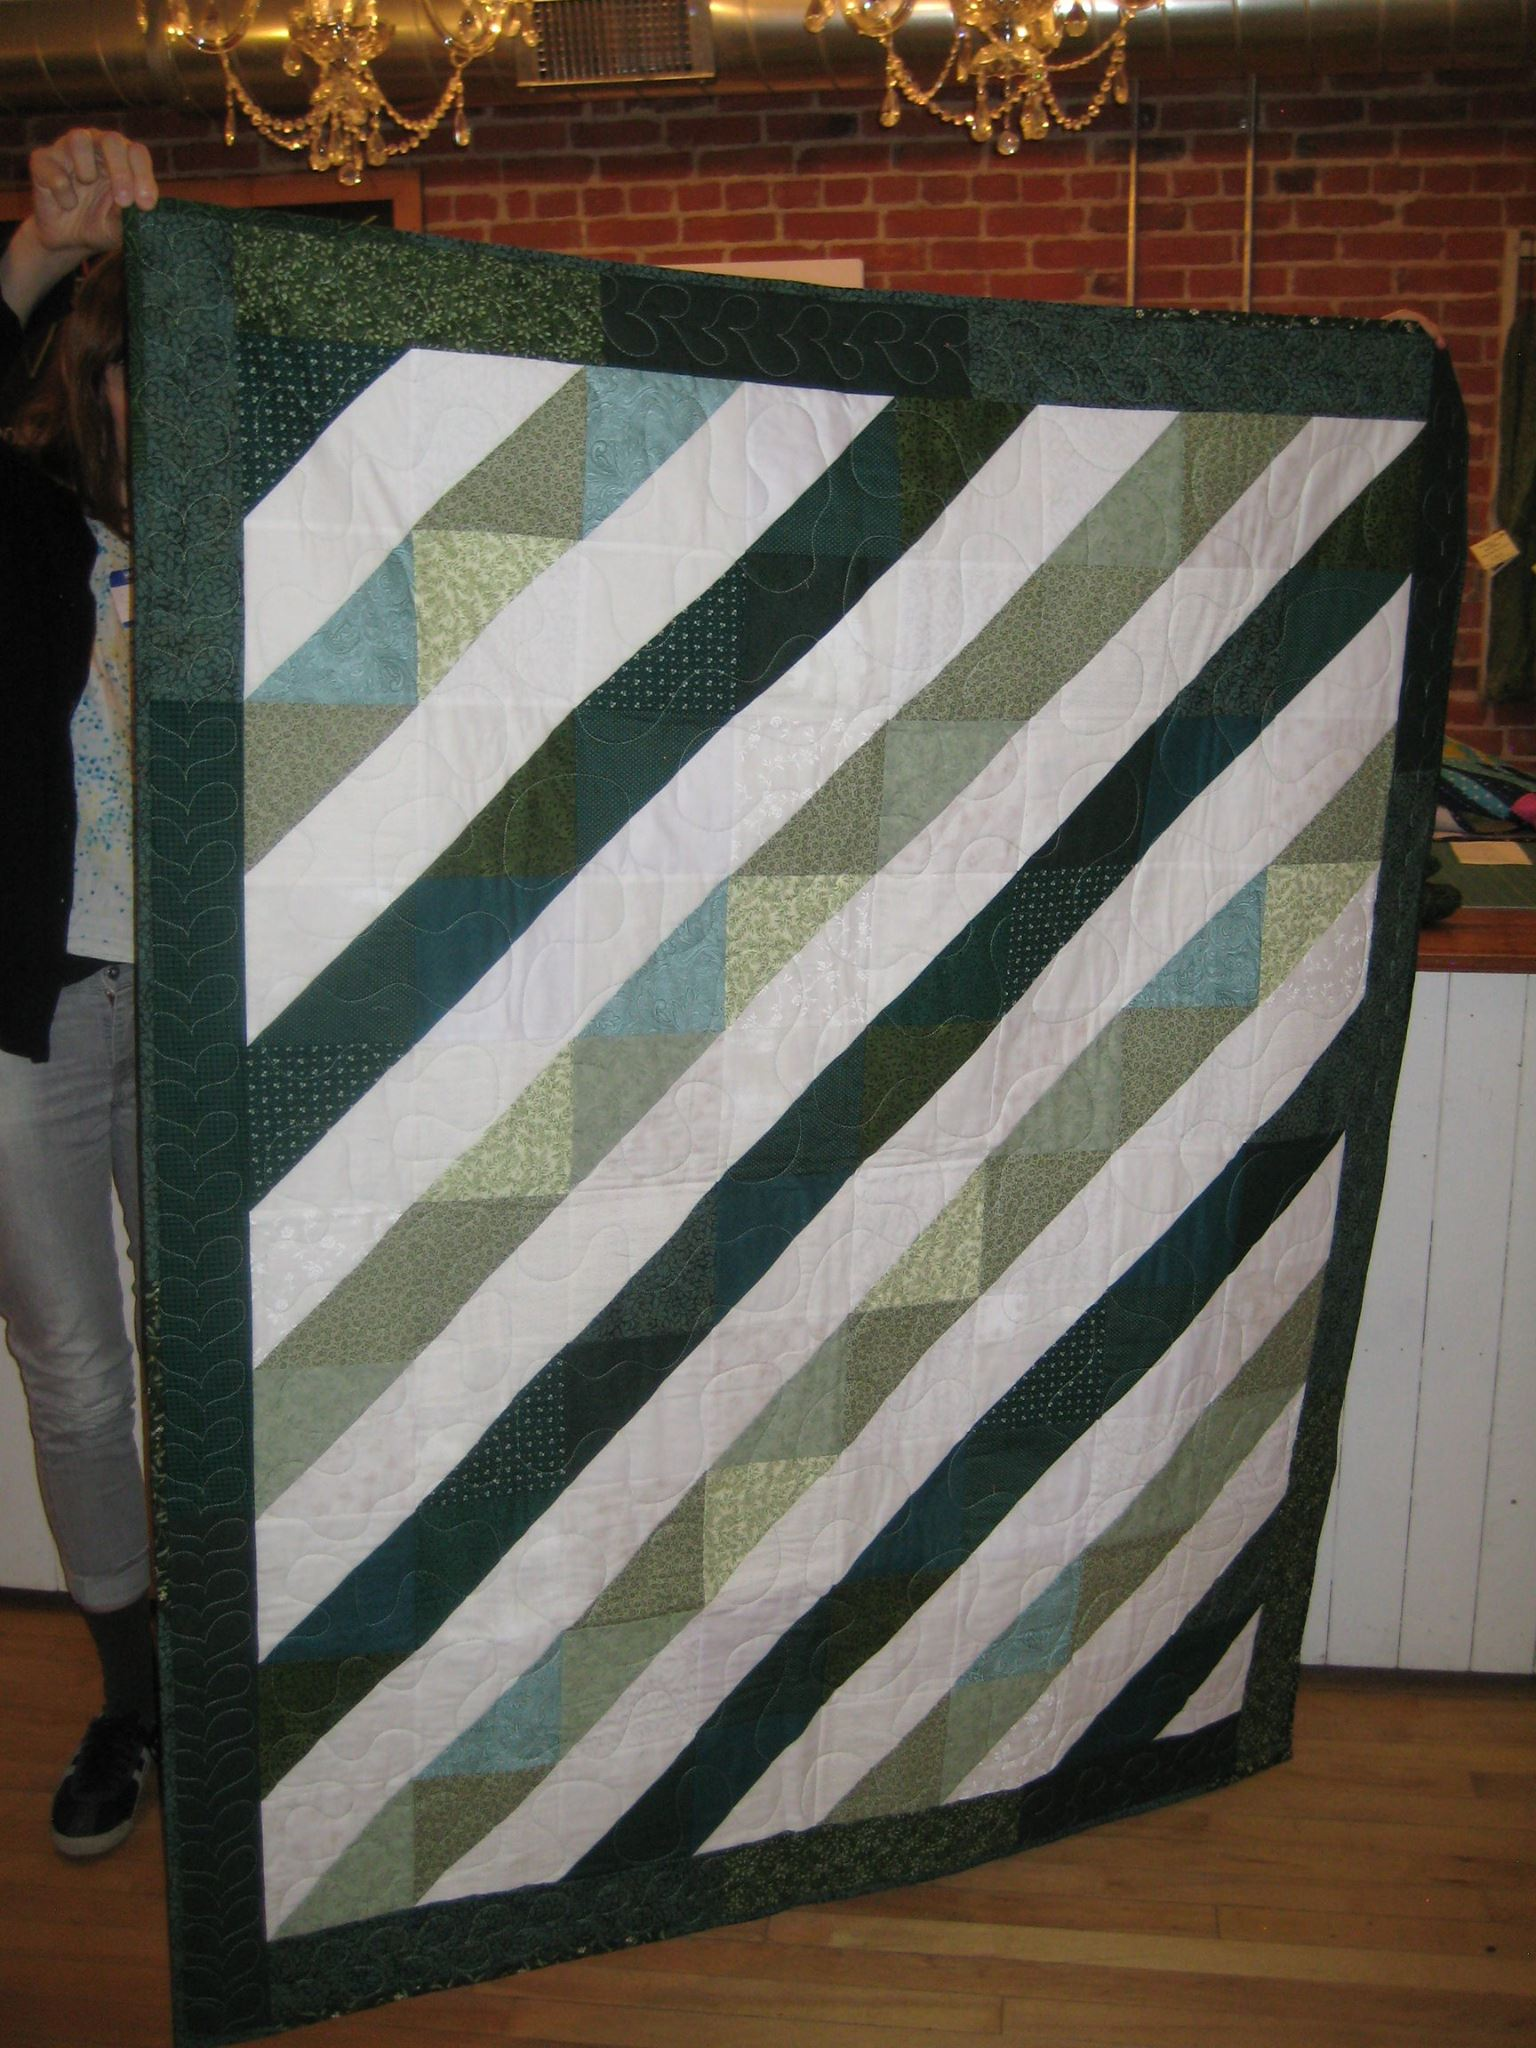 Carla's second quilt